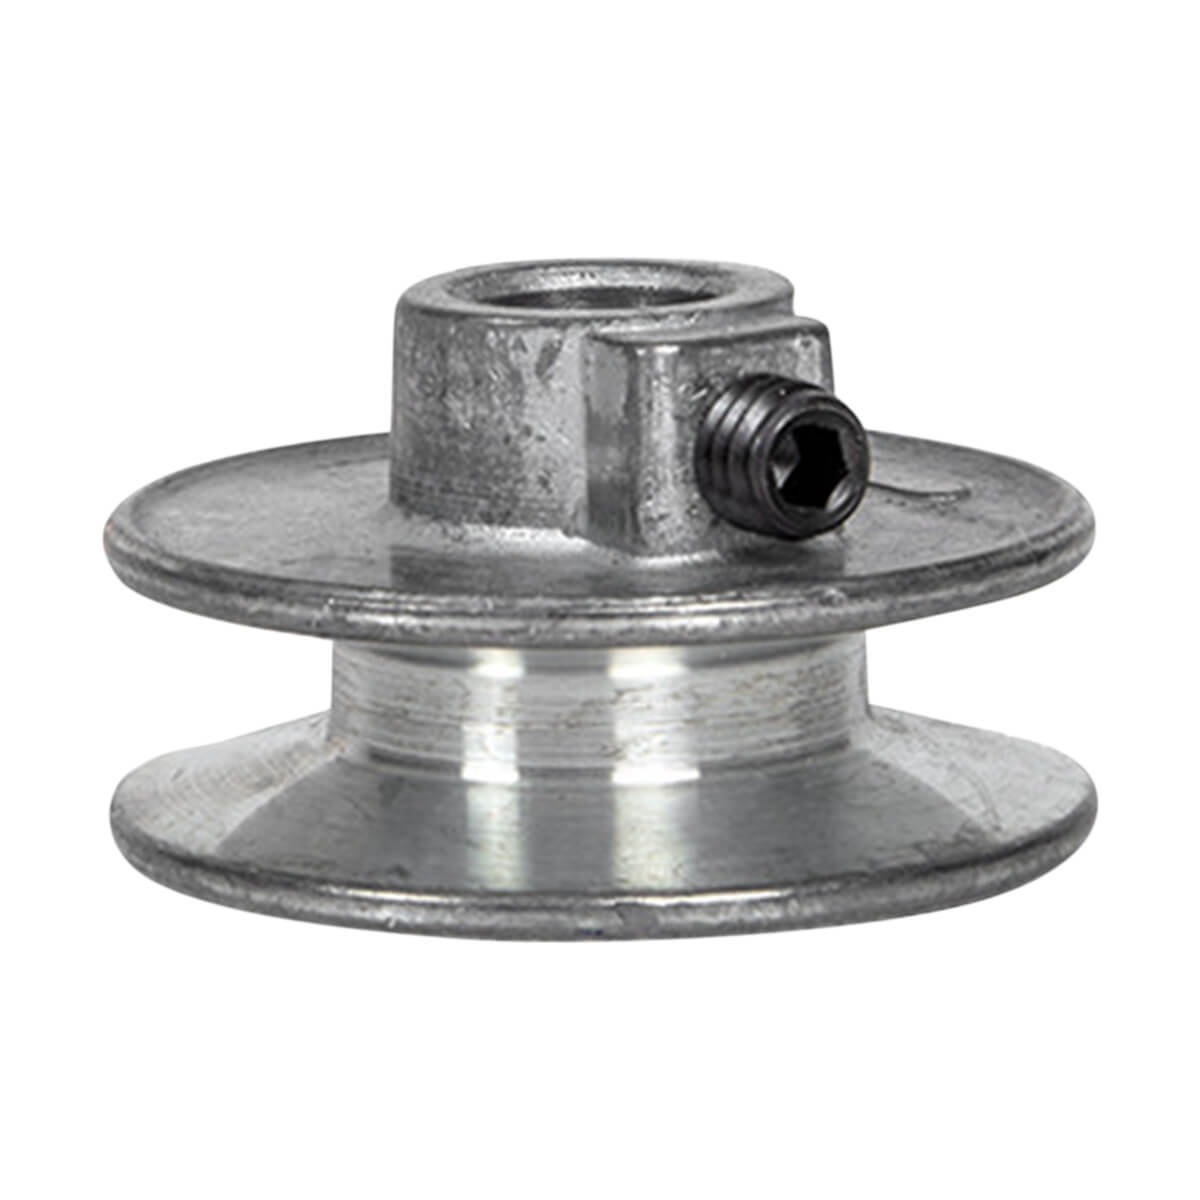 "Aluminum Pulley for A-Belts - 3 1/2"" x 5/8"""